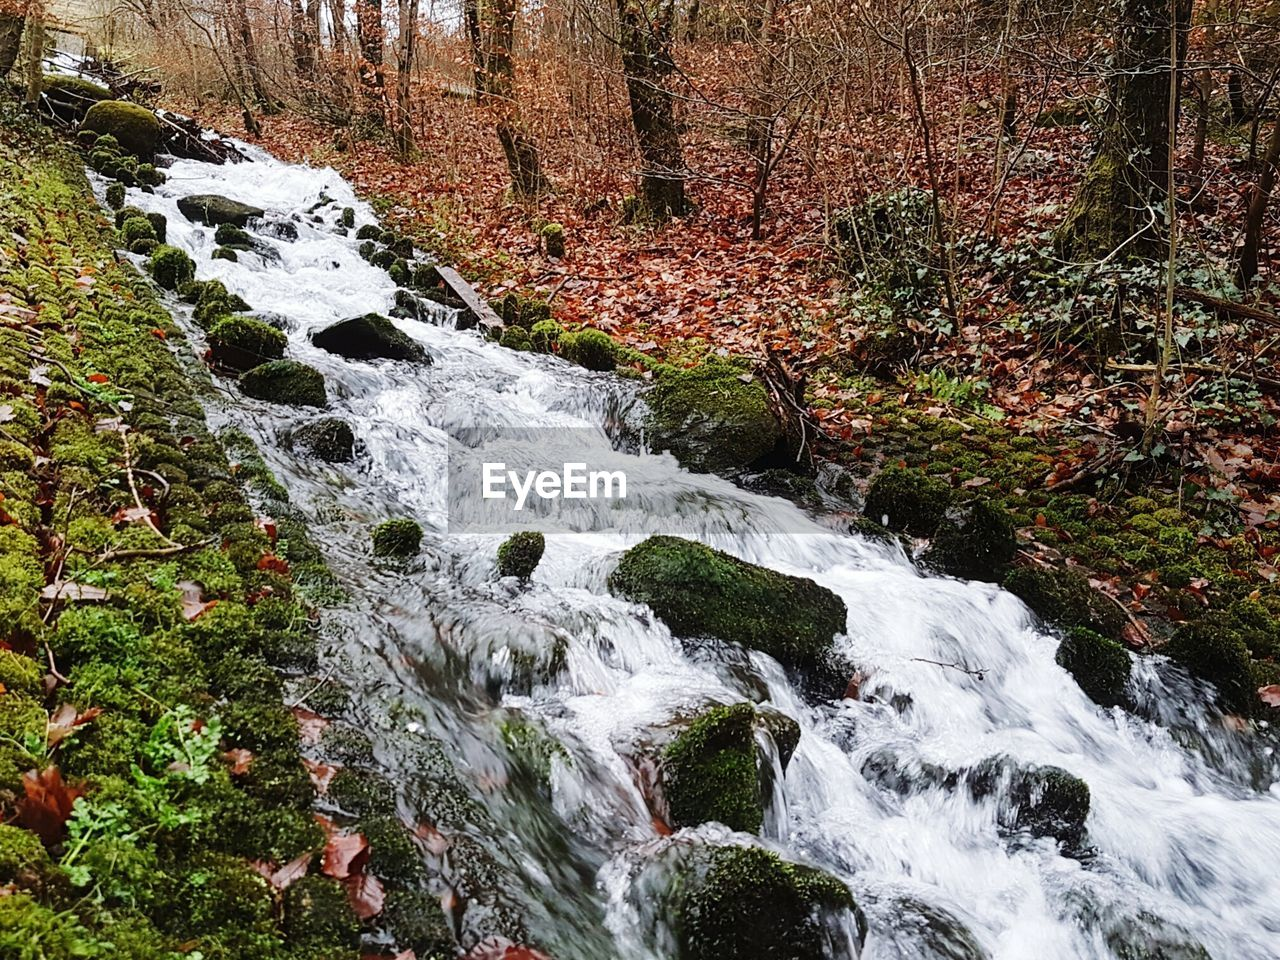 nature, forest, no people, tranquil scene, tranquility, beauty in nature, day, waterfall, tree, scenics, outdoors, water